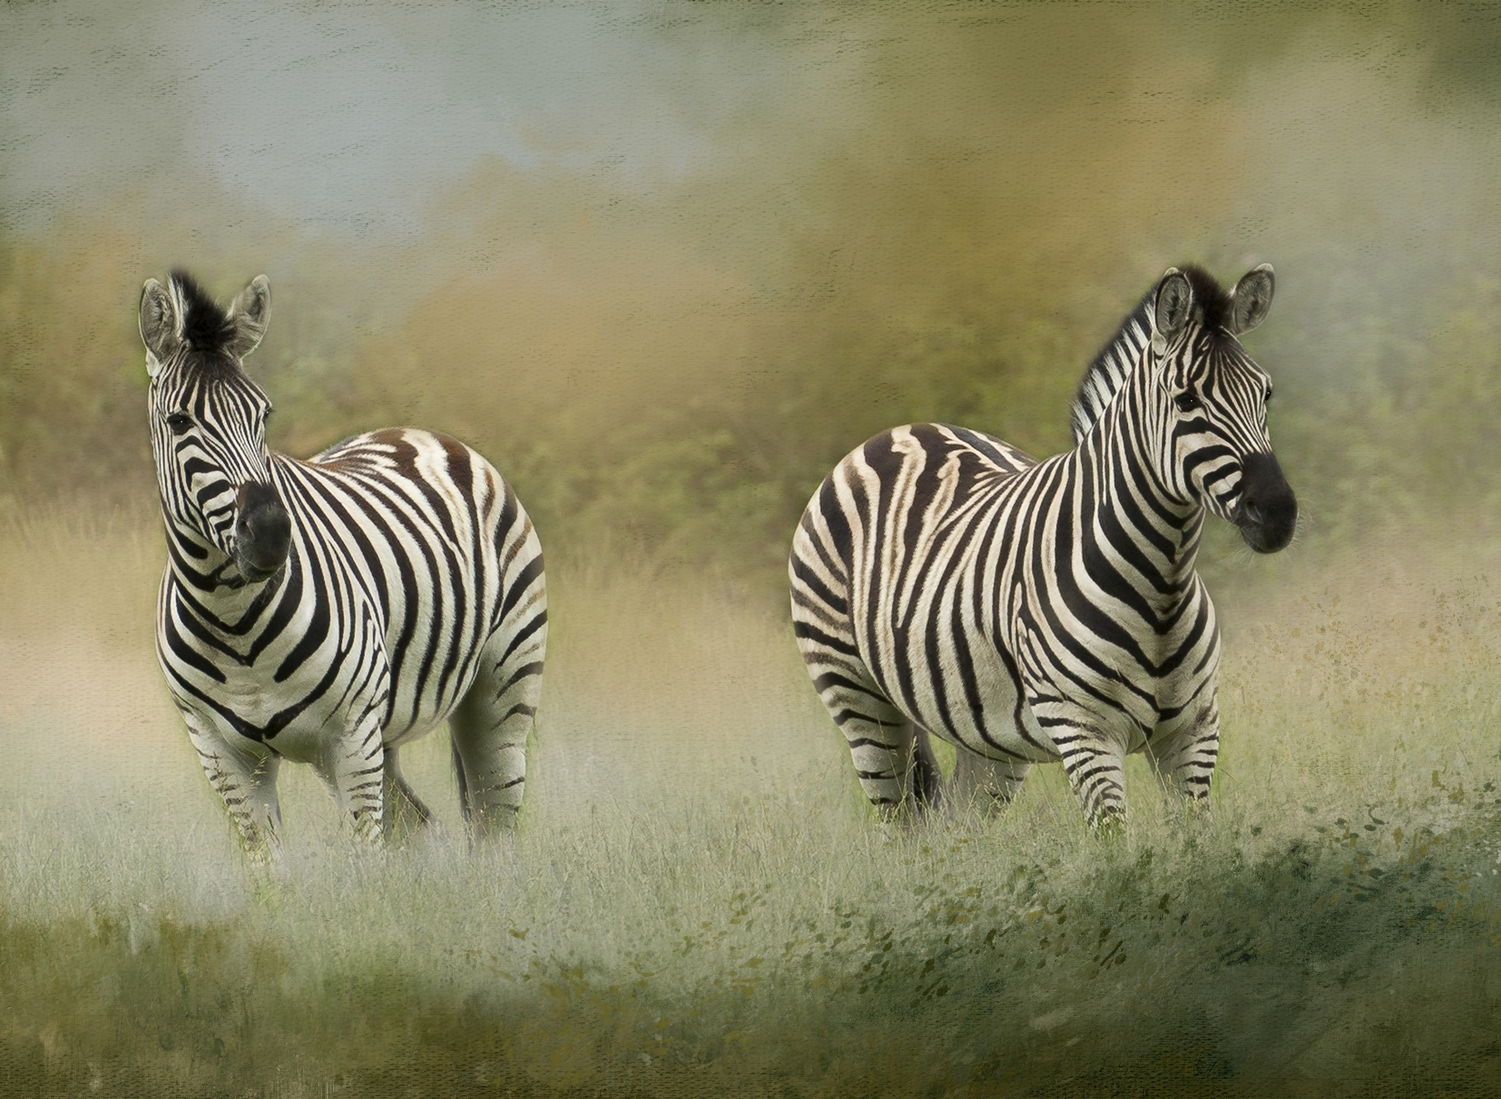 Zebras in Meadow